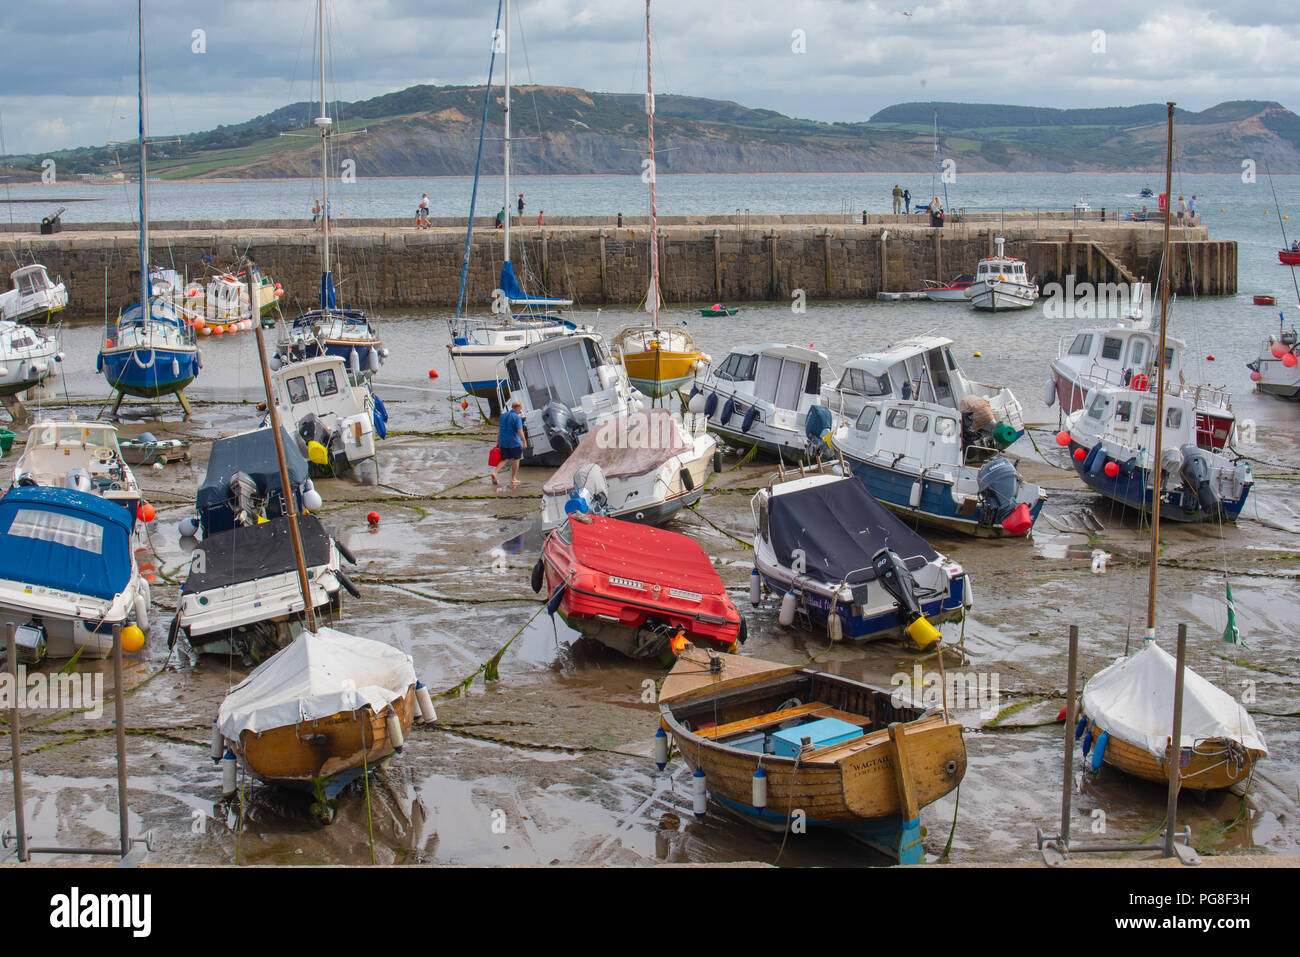 Lyme Regis, Dorset, UK. 24th August 2018: Cooler and cloudier conditions with some sunny spells at Lyme Regis. Credit: Celia McMahon/Alamy Live News - Stock Image